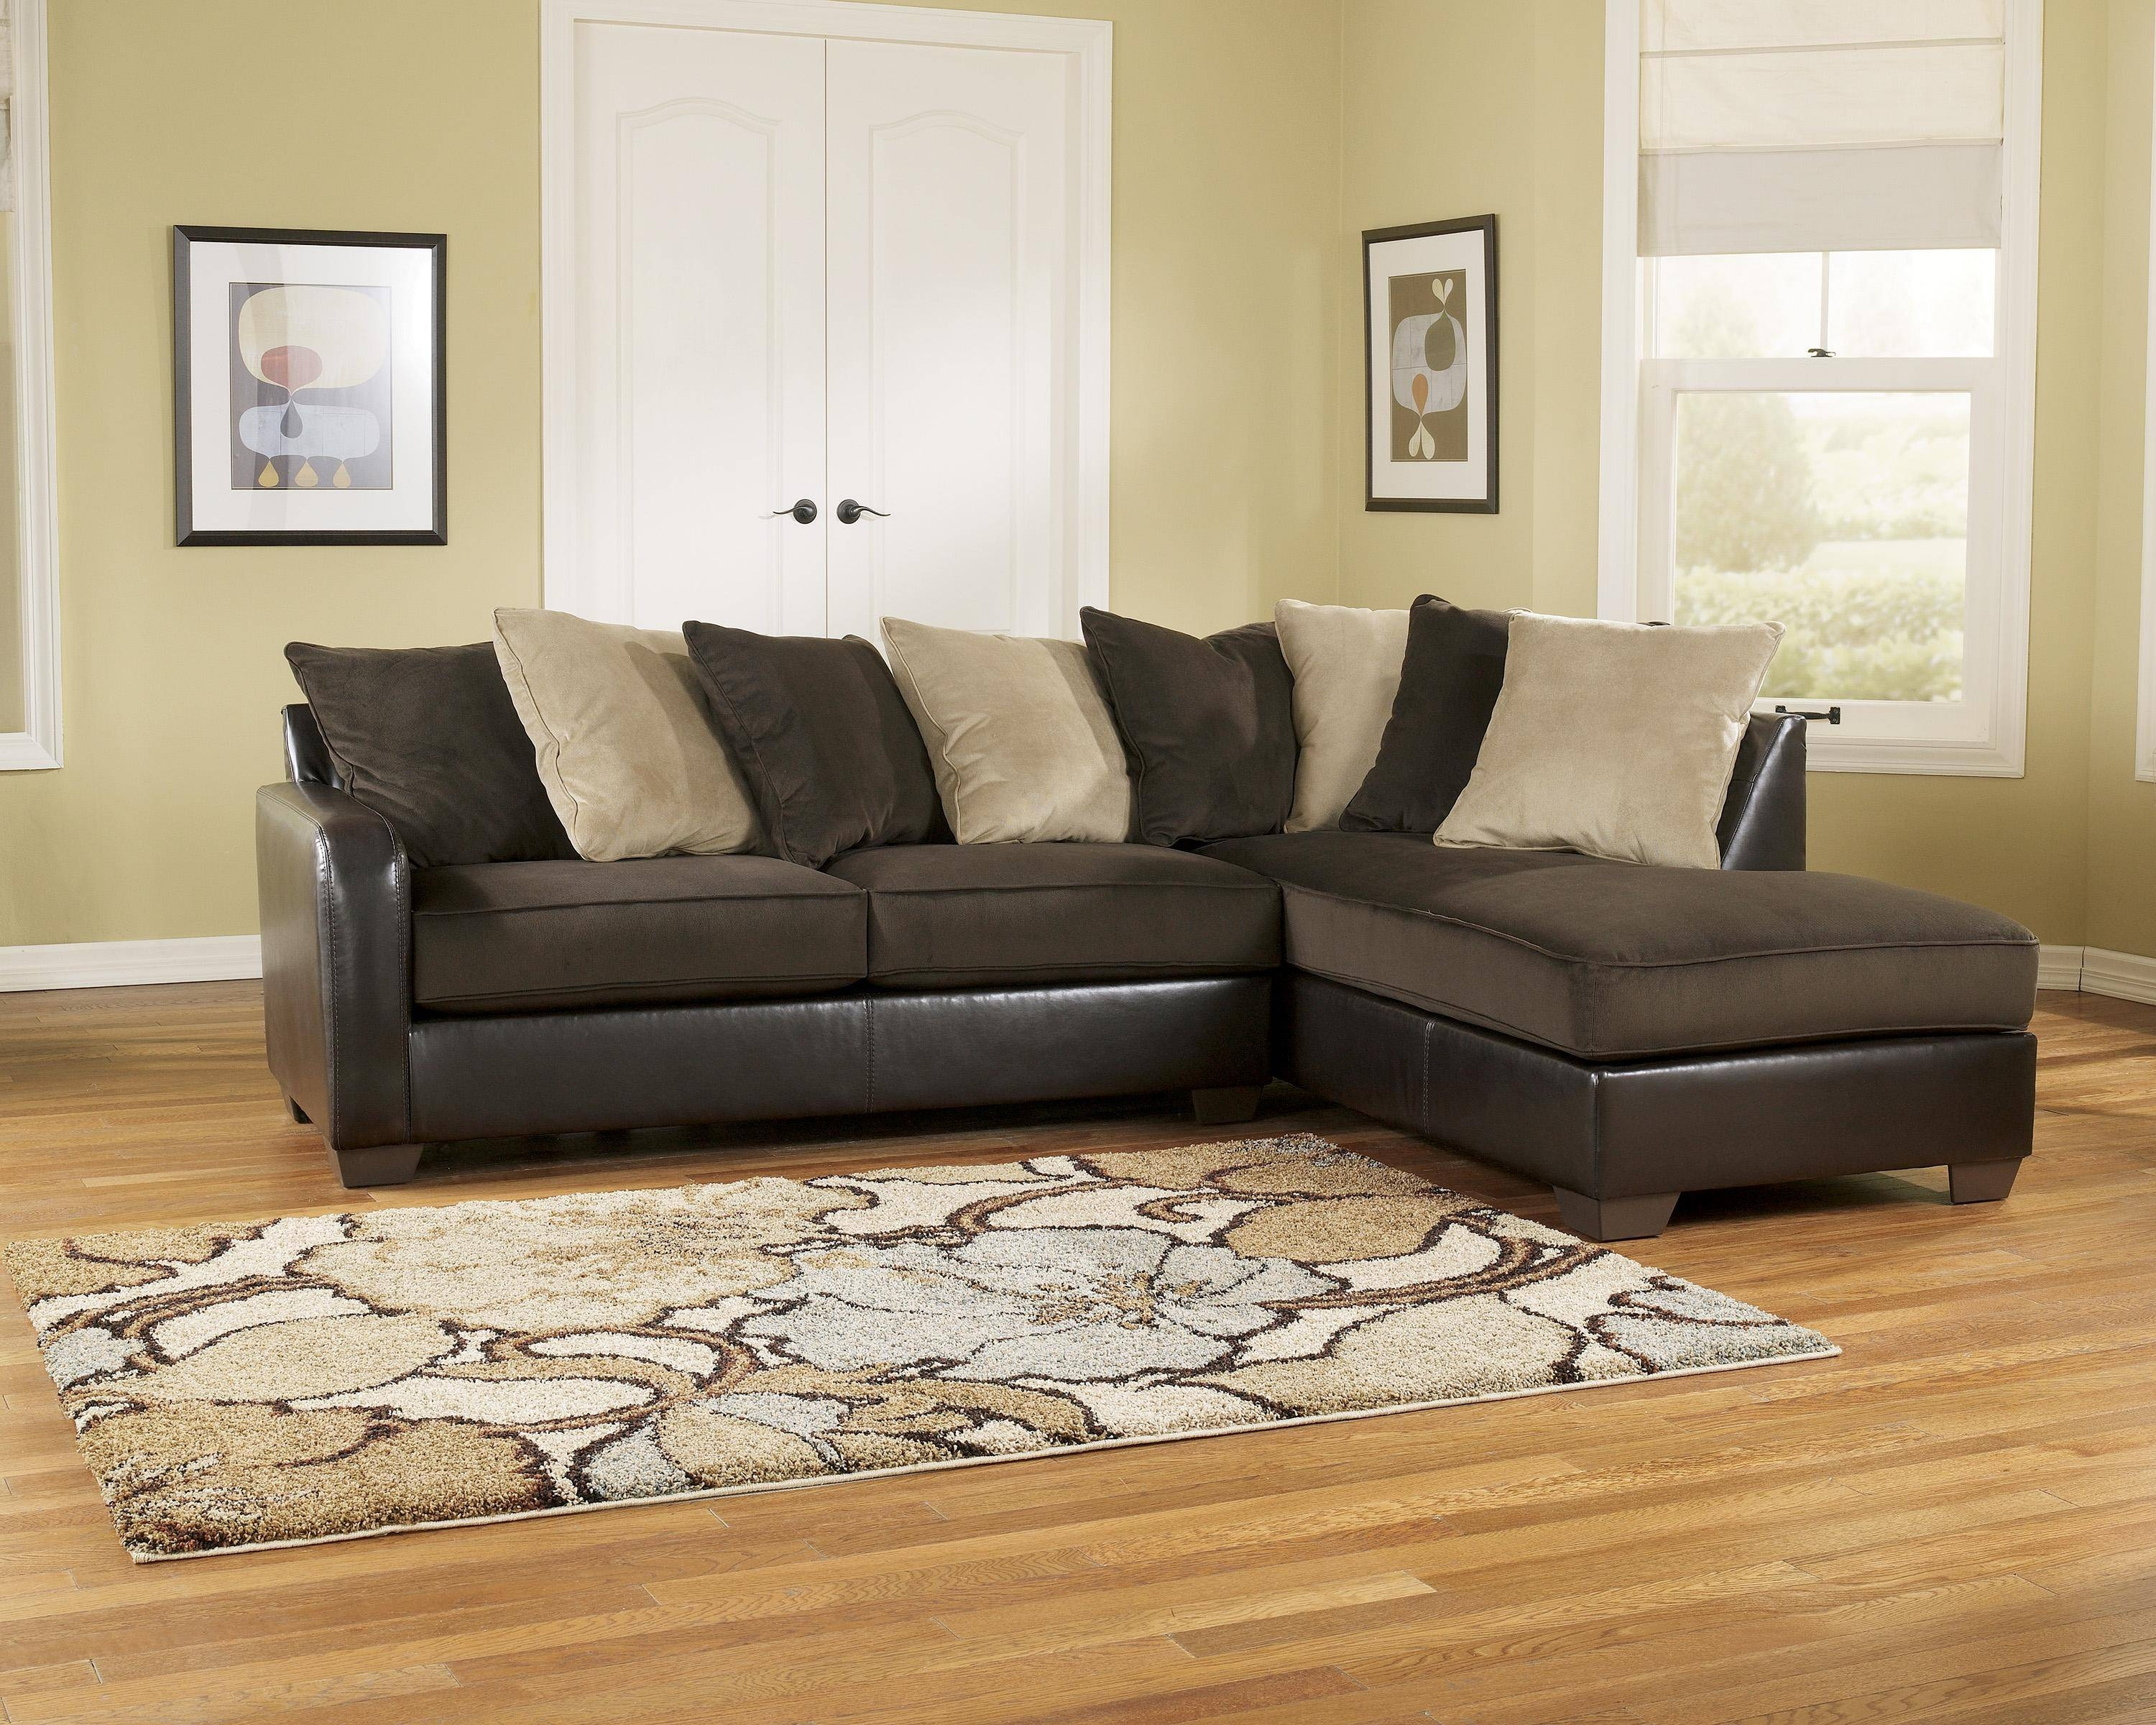 microfiber in together couch sofa sofas loveseat sectional chaise with for slipcovers tan